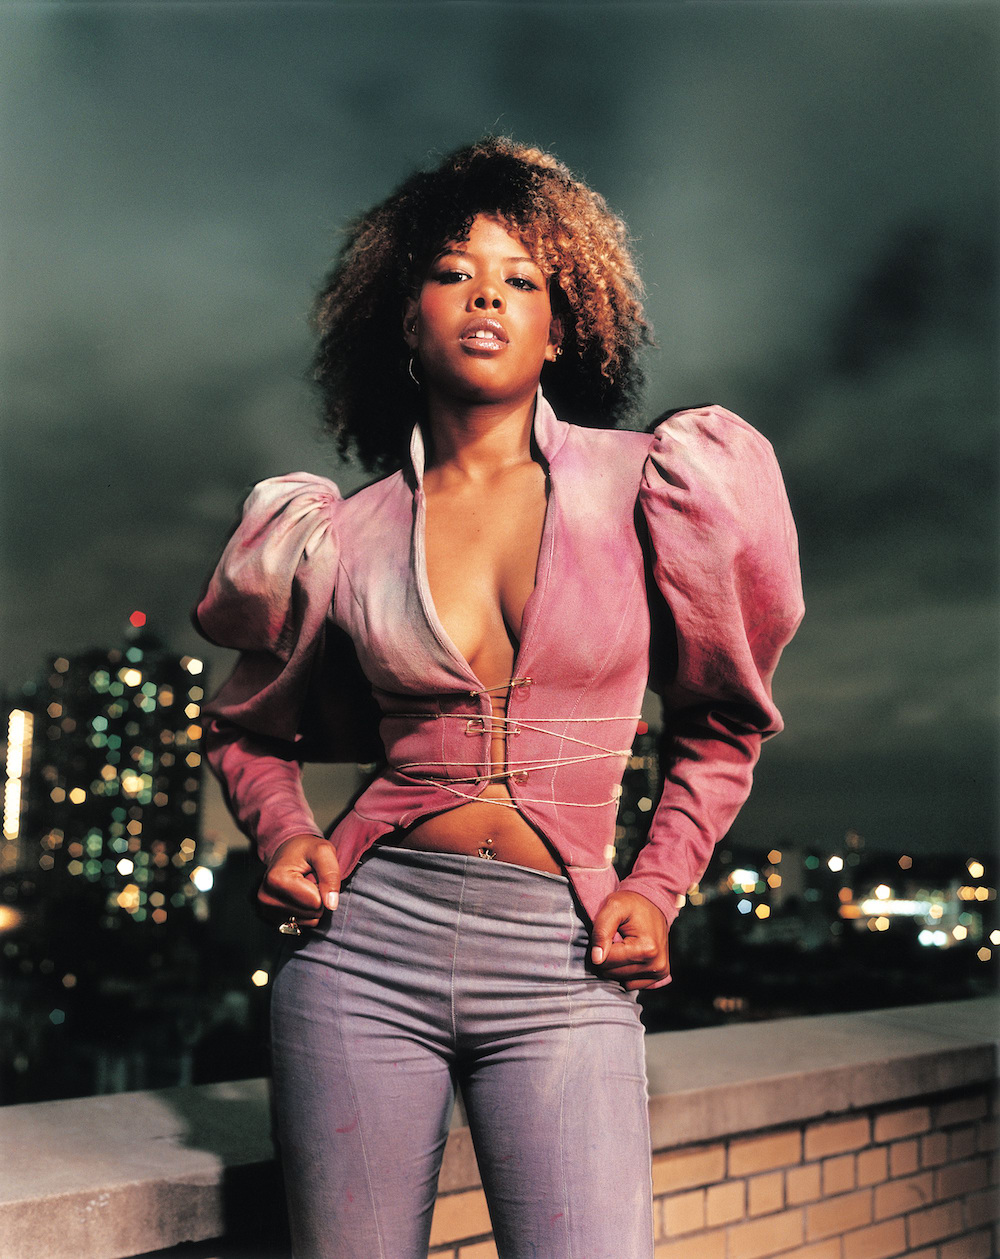 Look at these iconic photos from Kelis's 2001 FADER cover ...